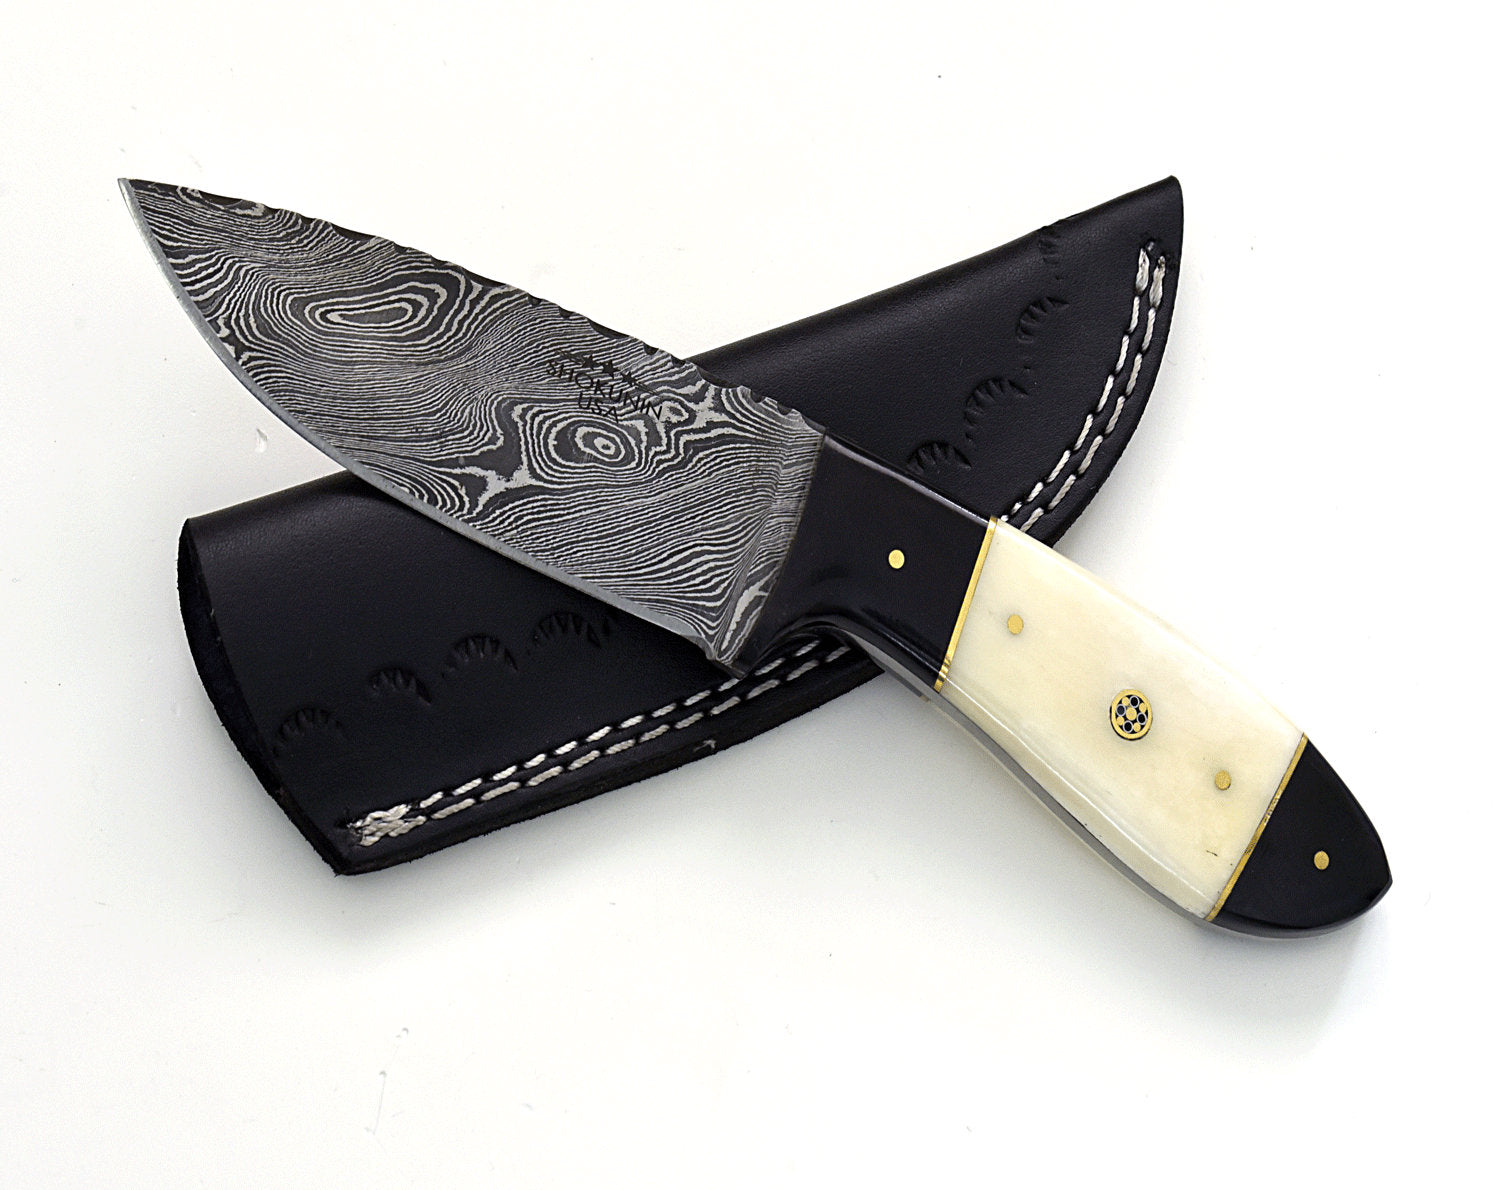 "9.0"", Damascus knife with Composite handle hunting/tactical/survival/custom/personalize Damascus steel knife - SHOKUNIN USA"